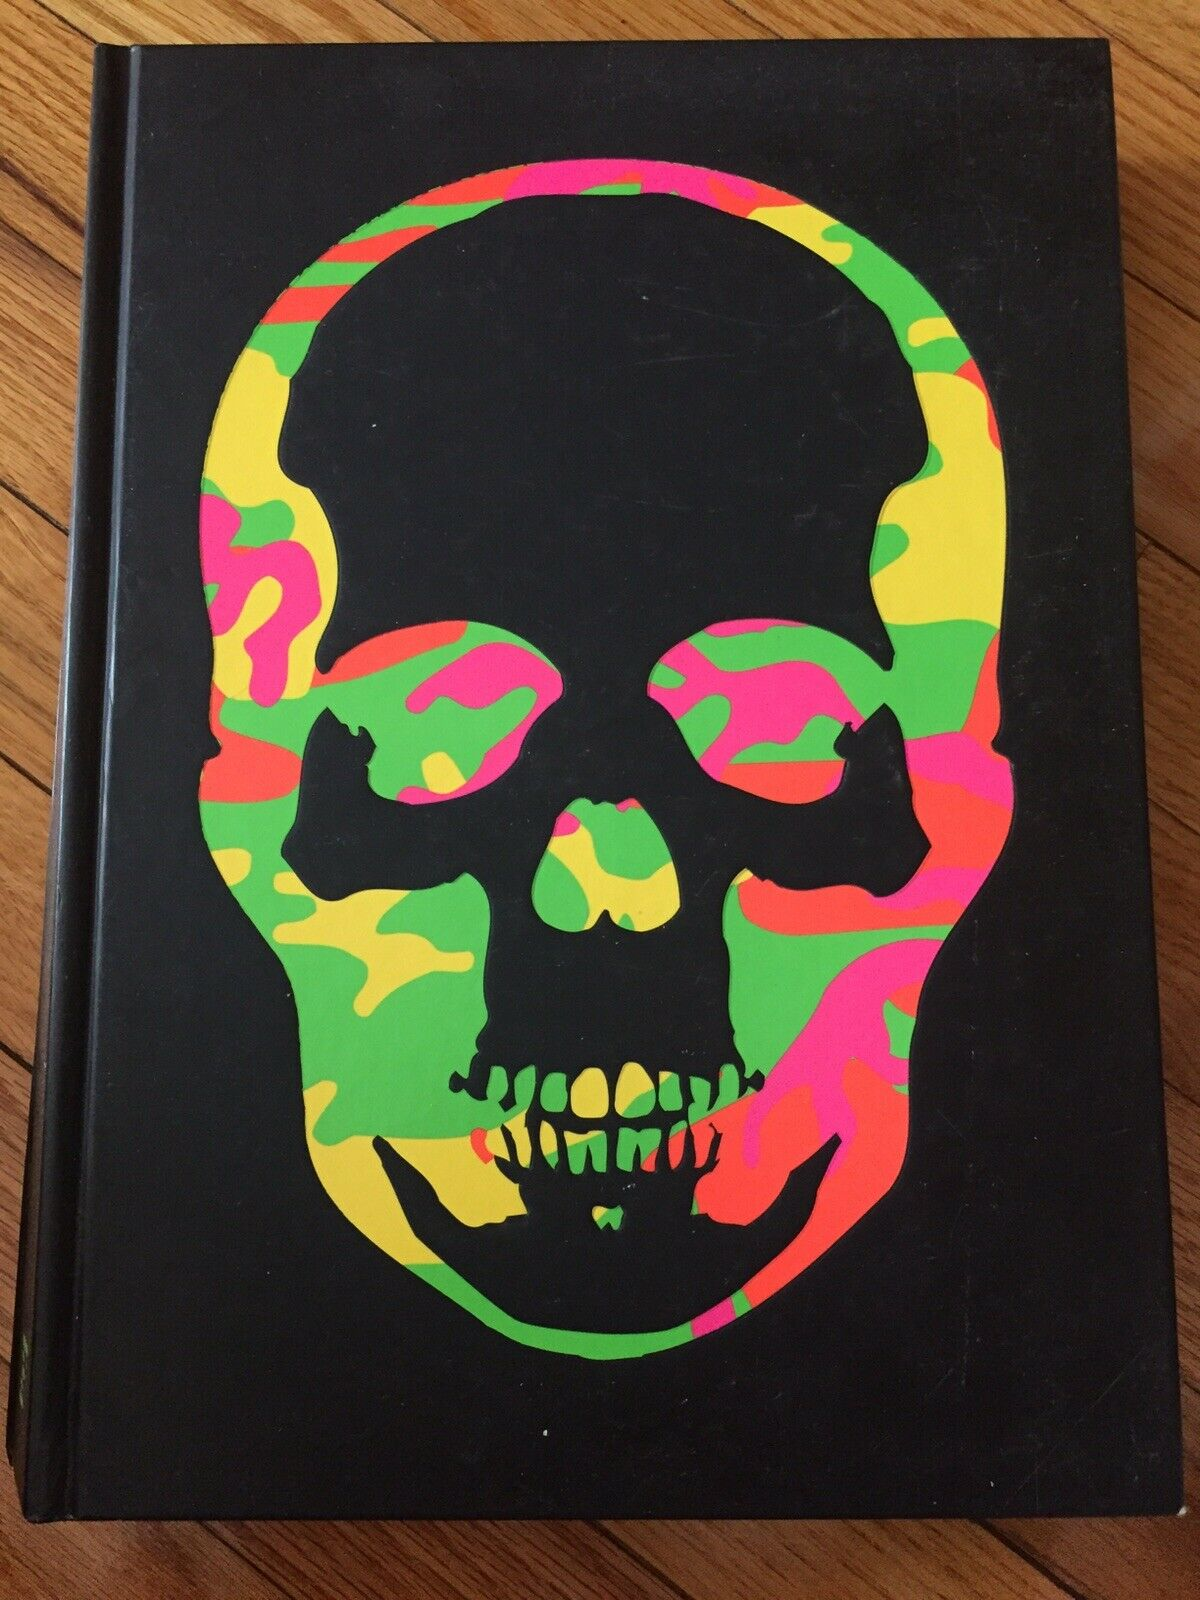 Skull Style Skulls In Contemporary Art And Design Metallic Black By Patrice Farameh 2011 Hardcover